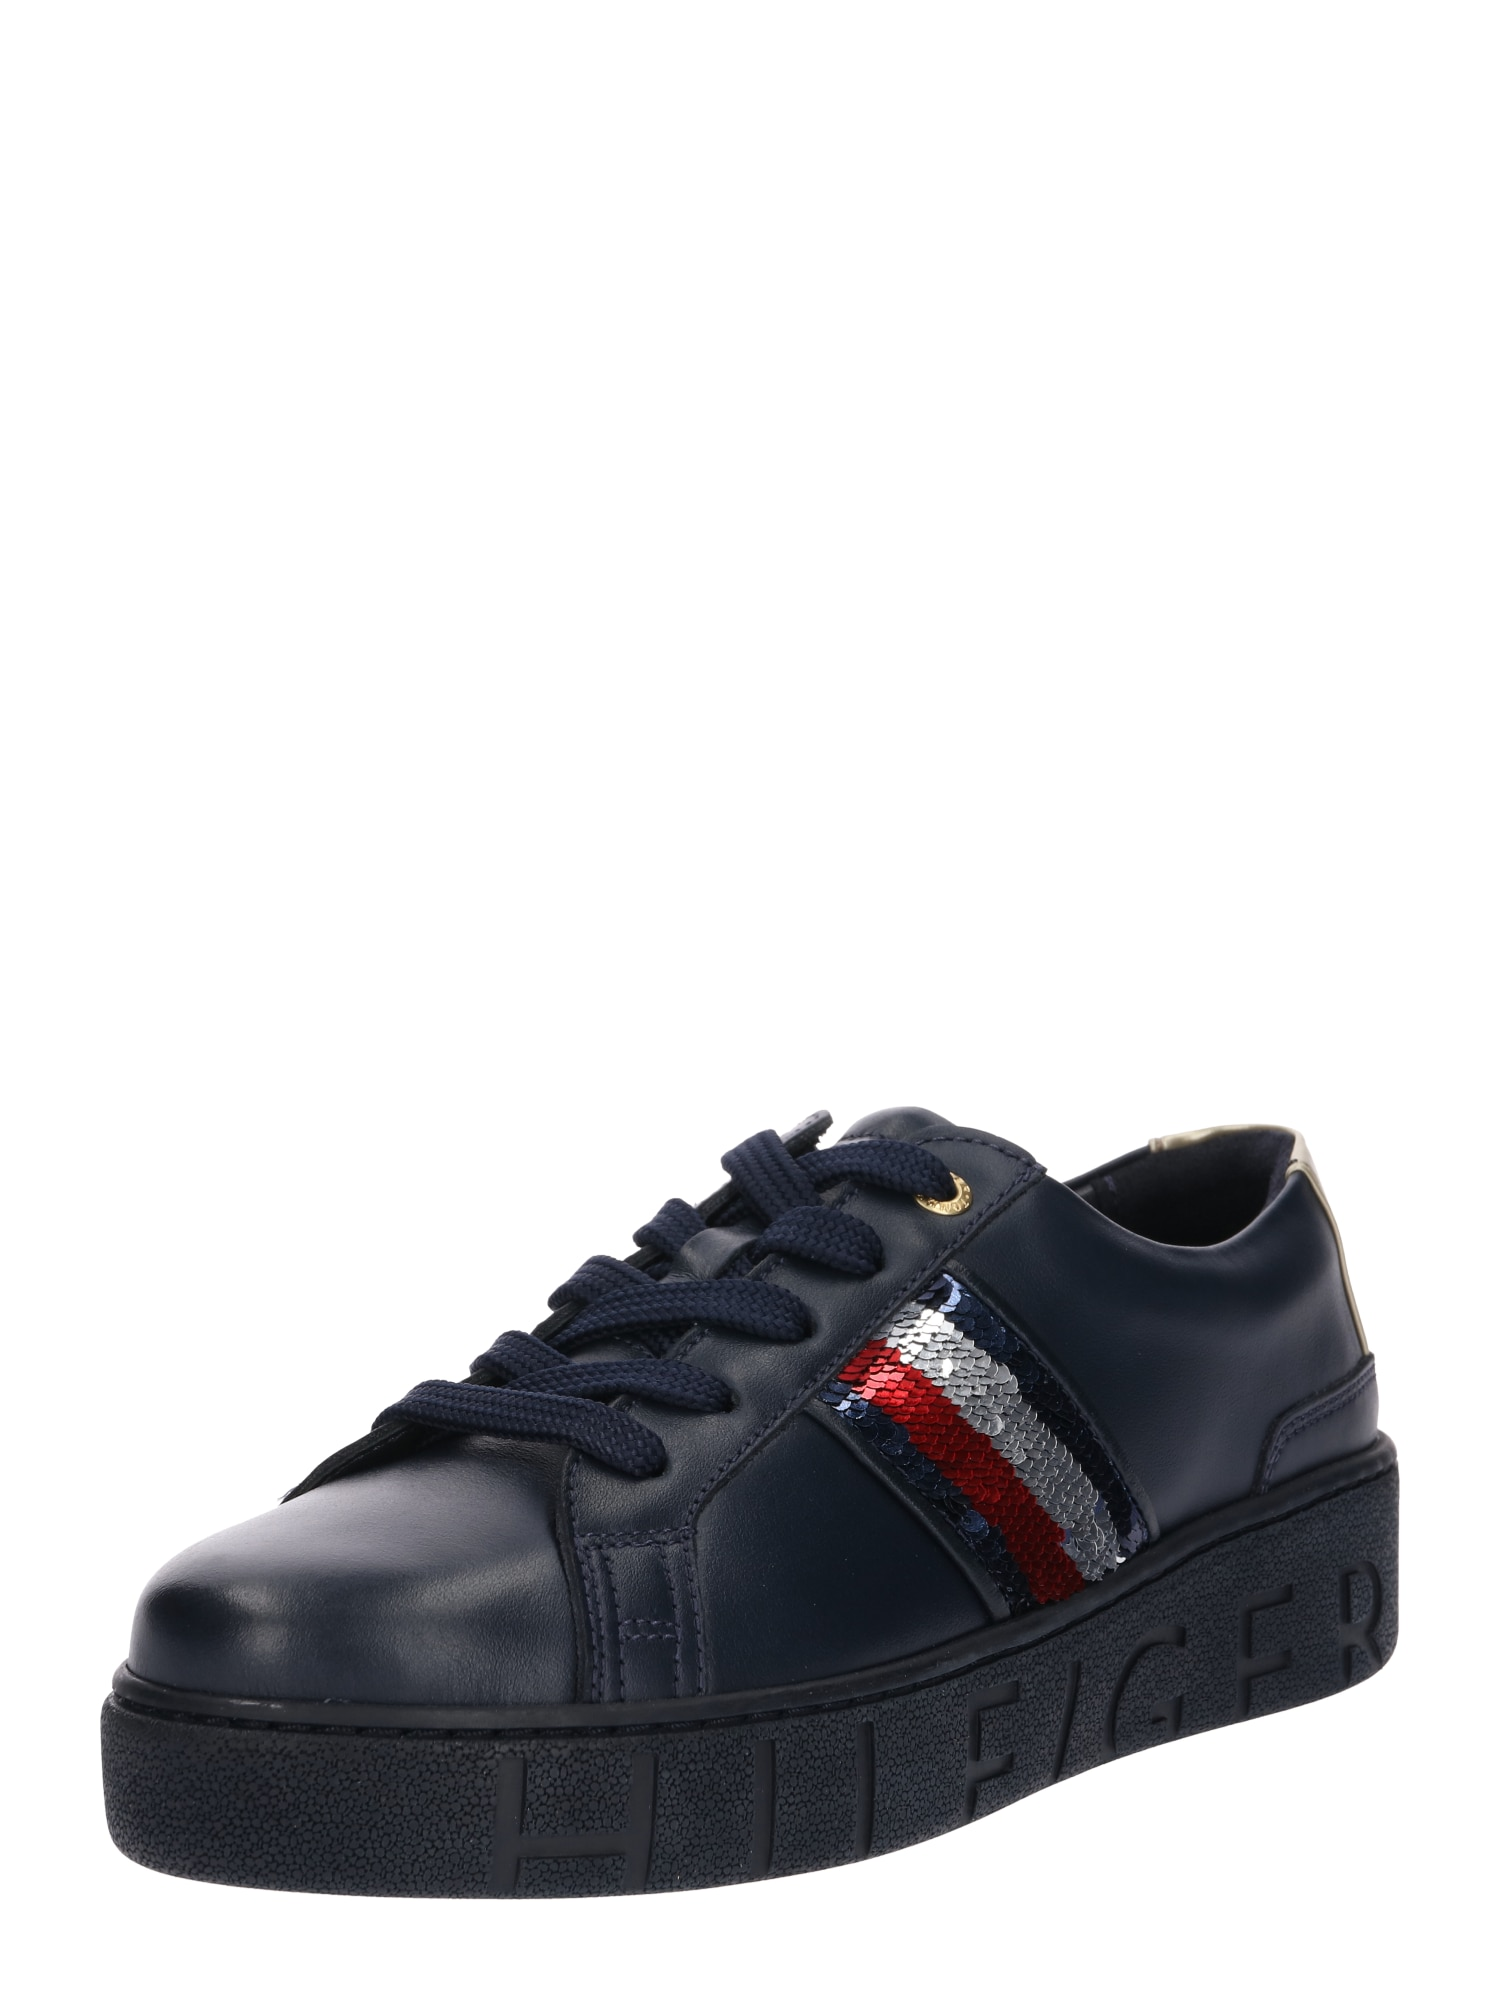 TOMMY HILFIGER, Dames Sneakers laag 'TOMMY SEQUINS', navy / grijs / rood